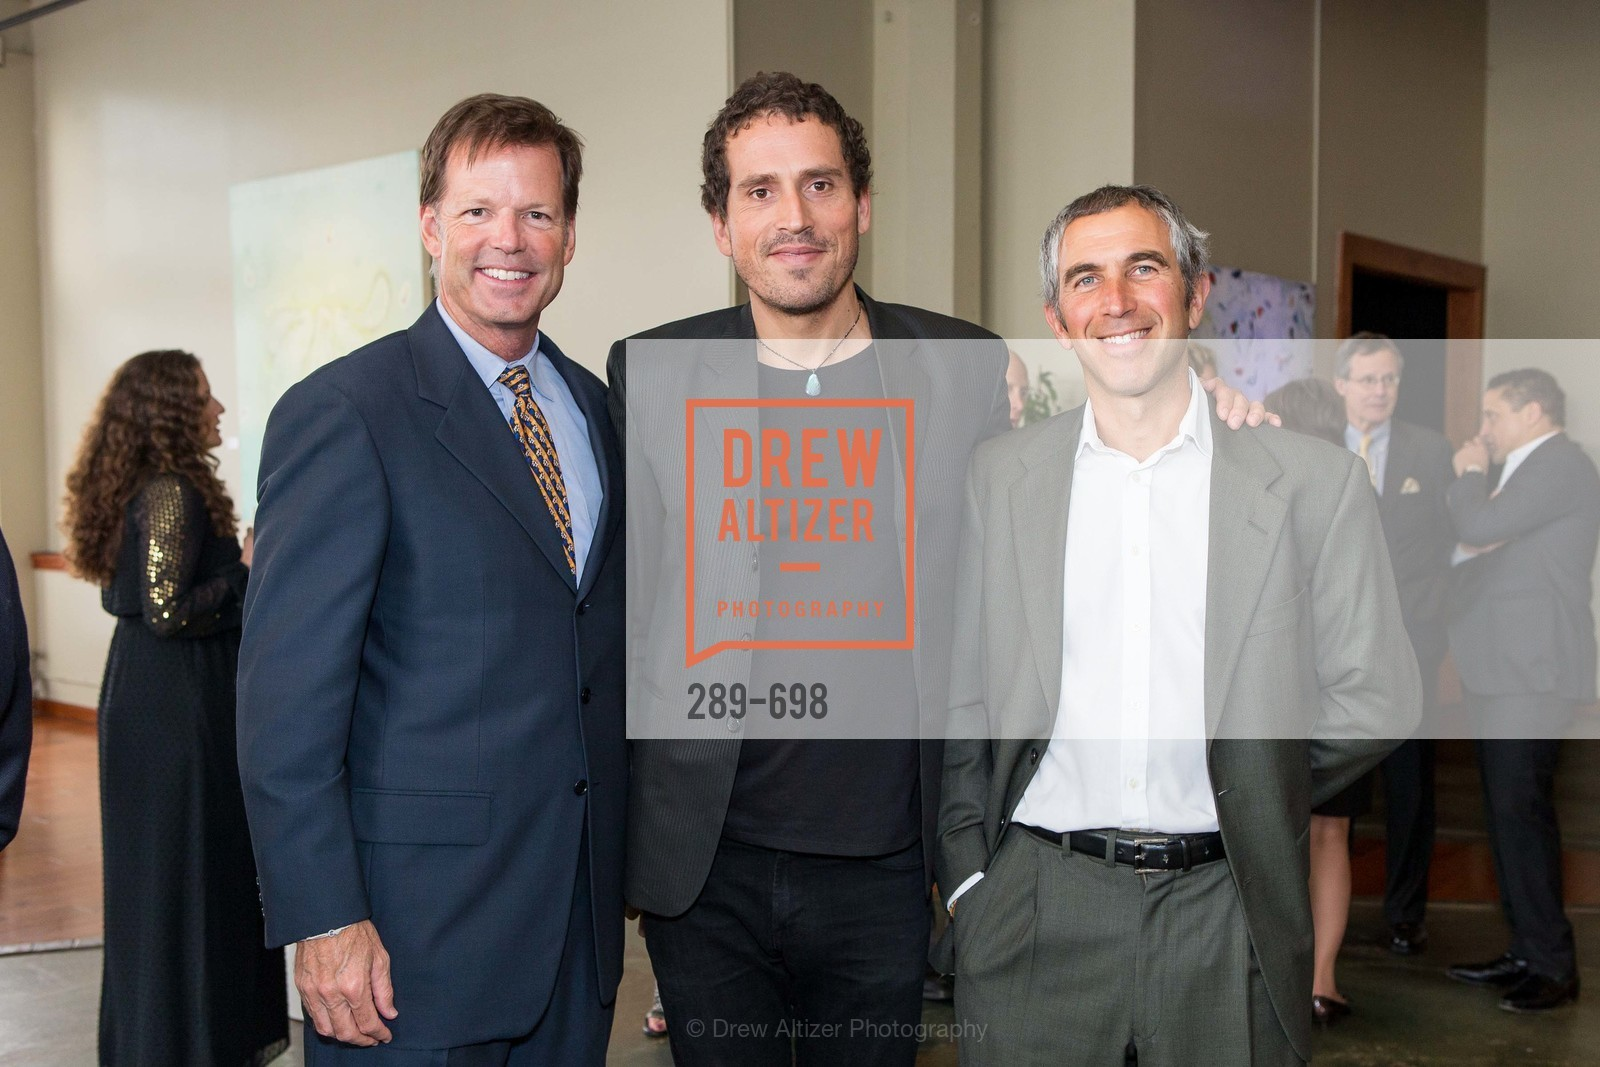 Jim Osgood, Gunnar Lovelace, Jeff Mendelsohn, EWG's 6th Annual Earth Dinner, US, May 6th, 2015,Drew Altizer, Drew Altizer Photography, full-service event agency, private events, San Francisco photographer, photographer California